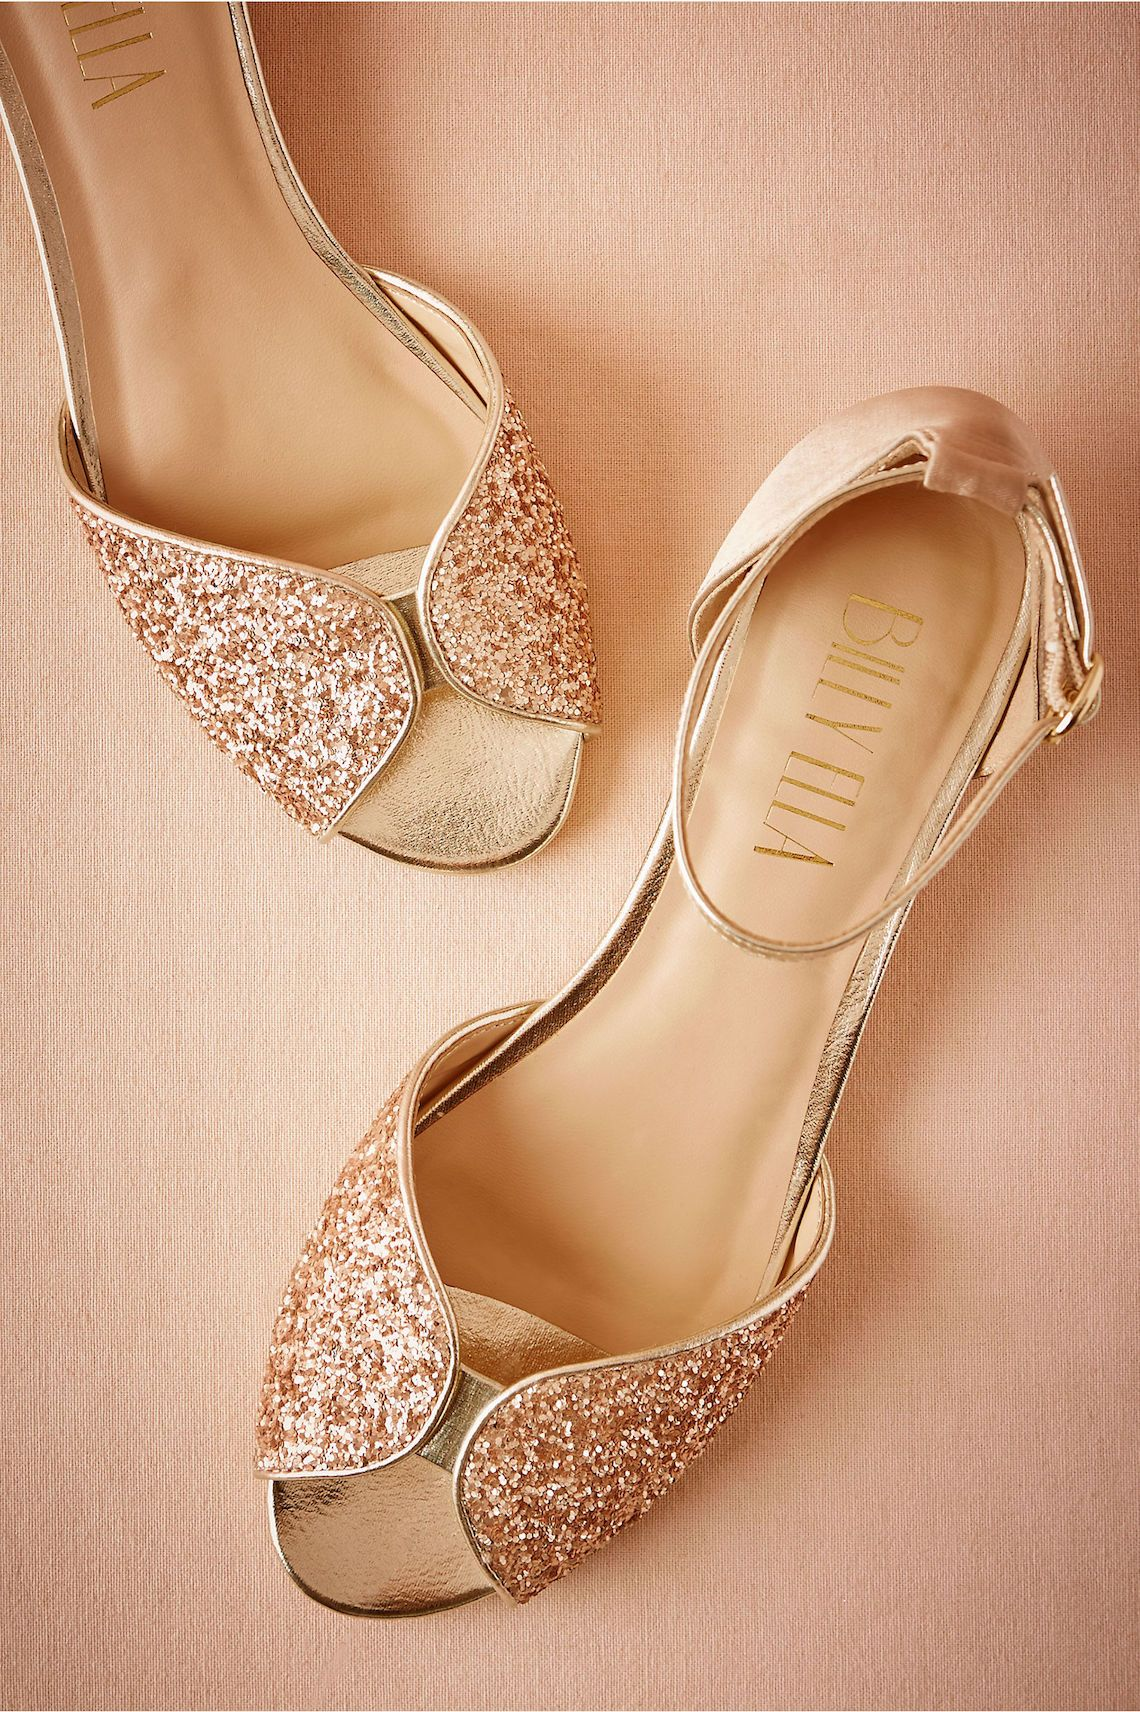 10 Flat Wedding Shoes (That Are Just As Chic As Heels)  c89ae8973d8a